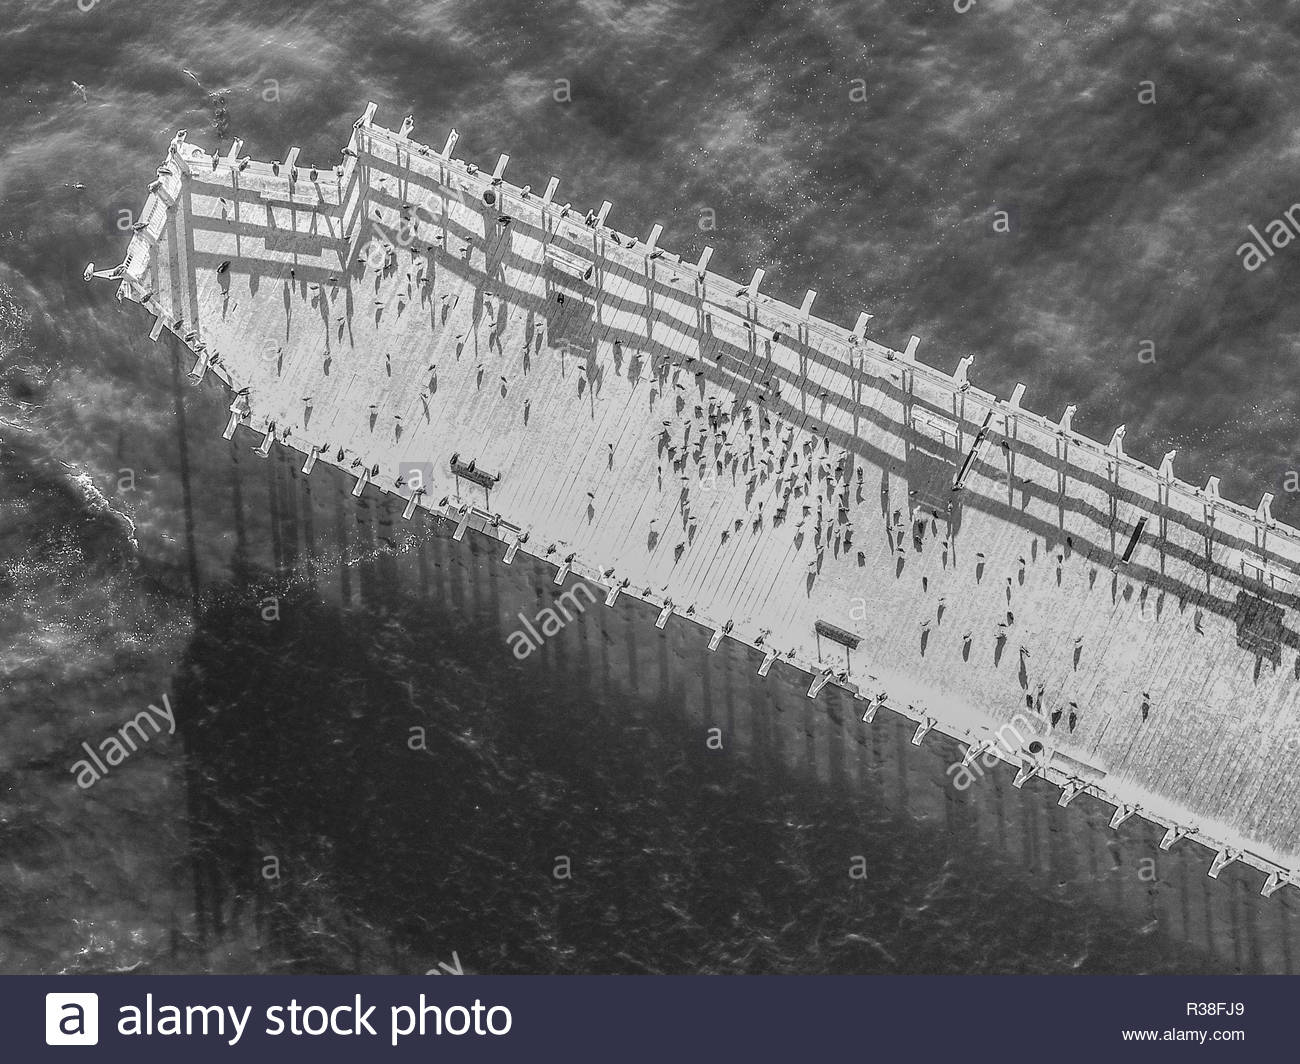 Aerial: Cement Ship, Beached at Seacliff - Stock Image